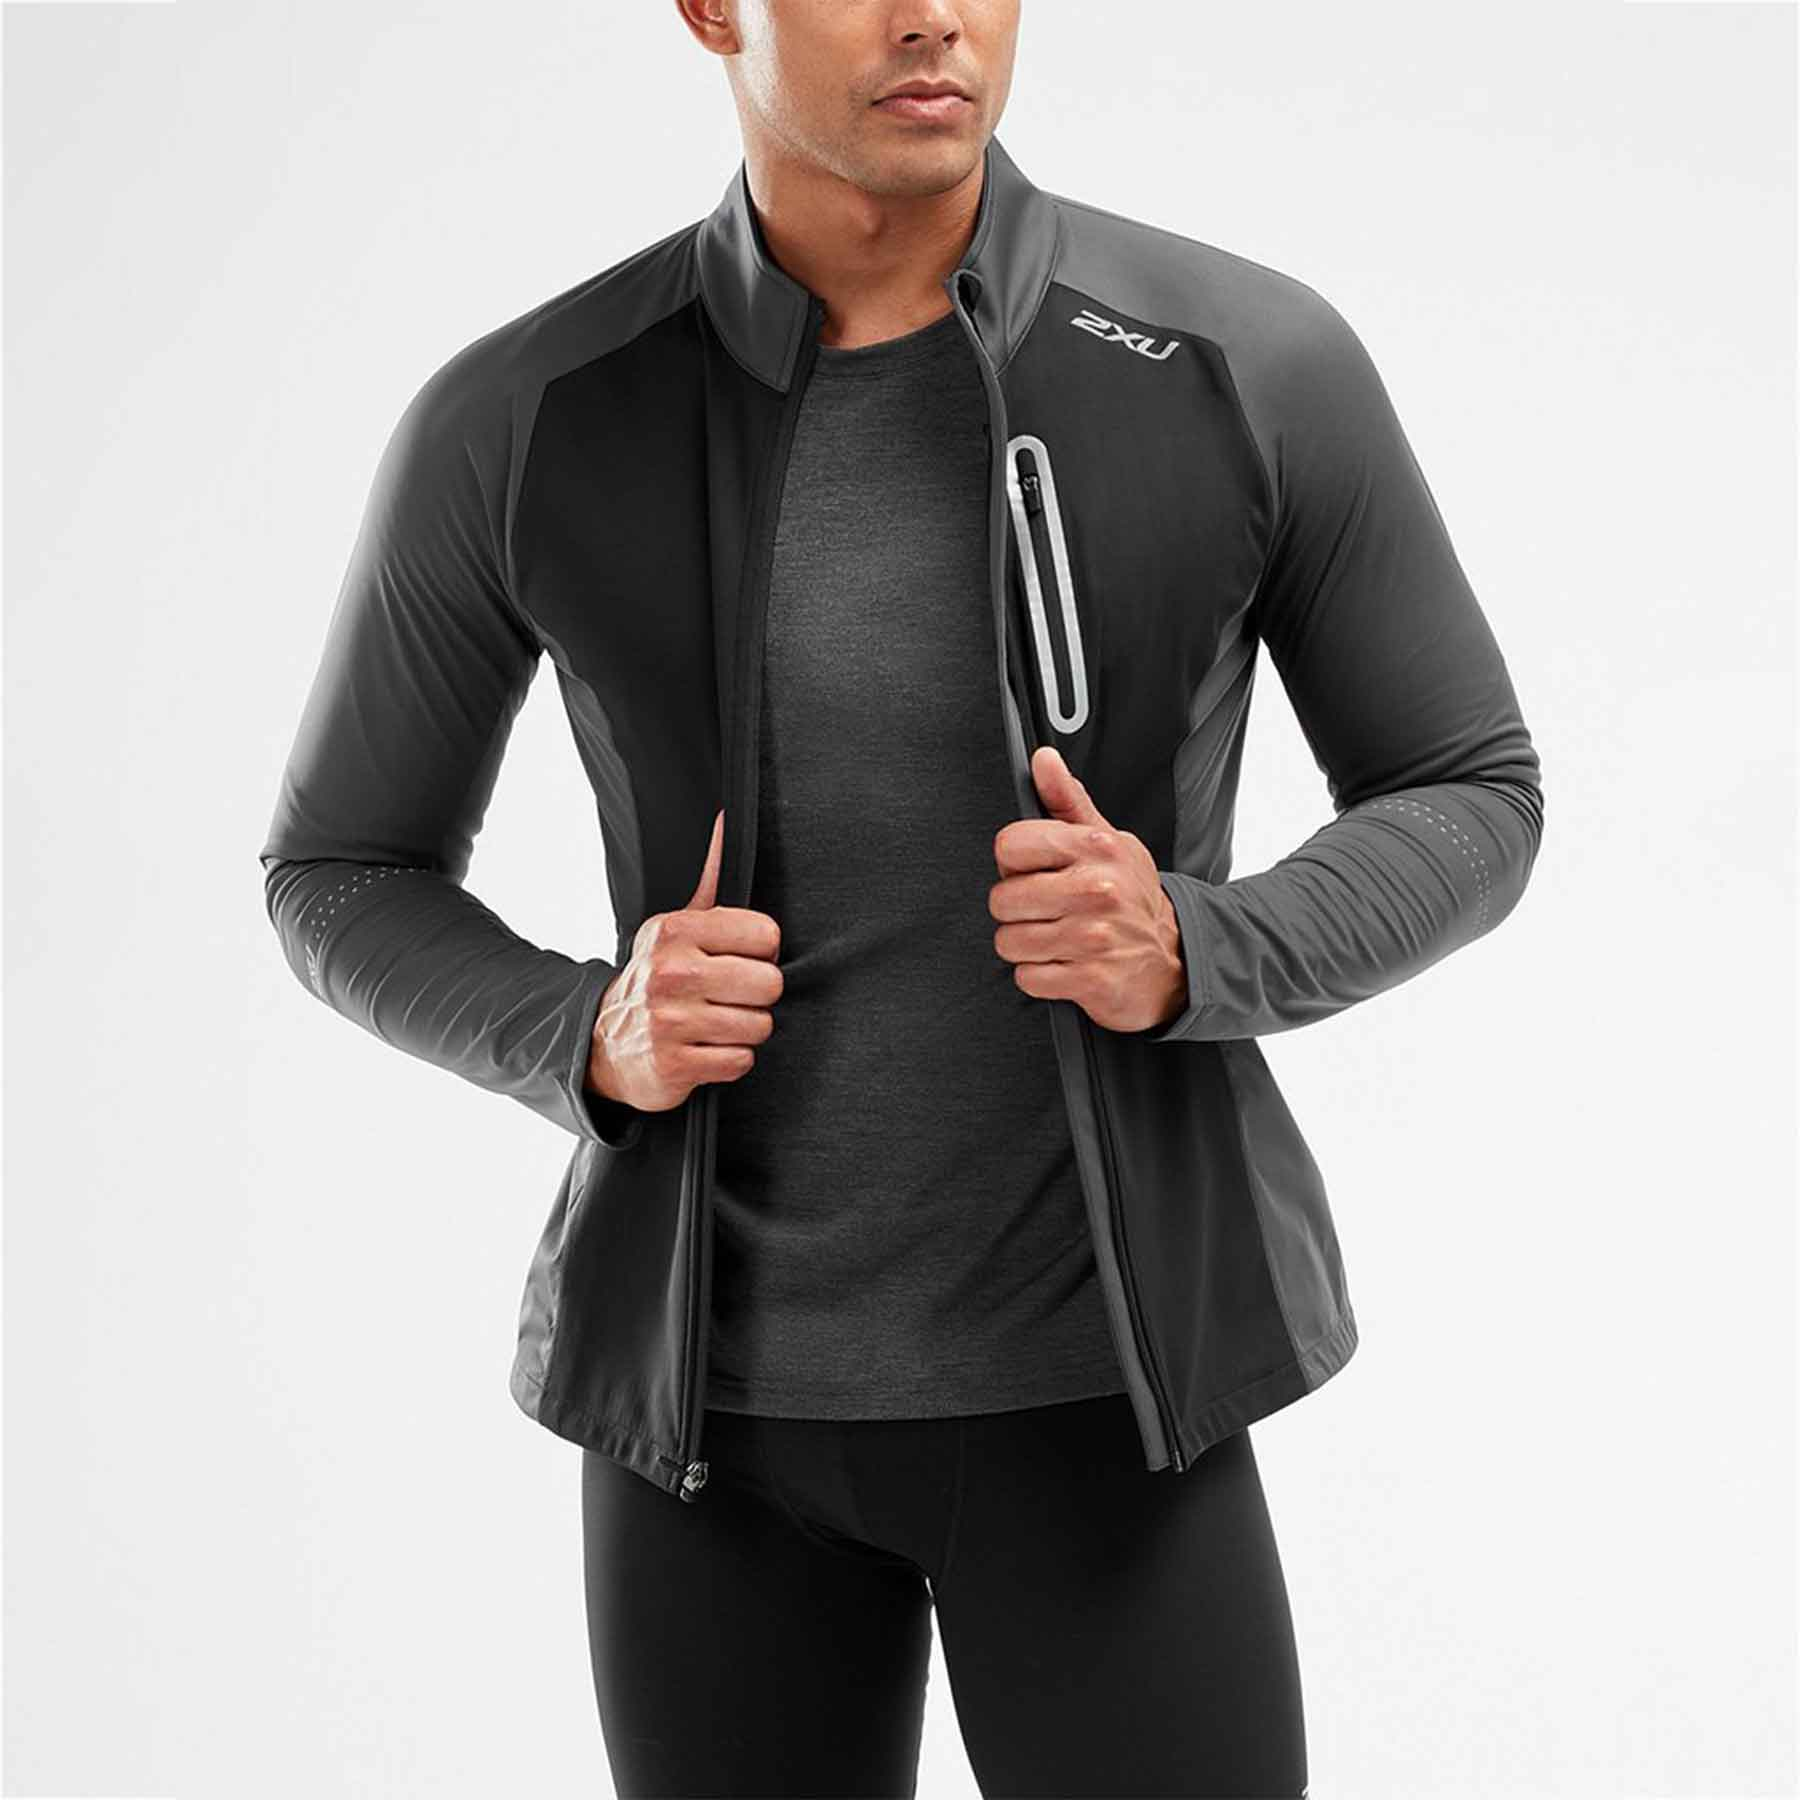 2XU vêtements sport de performance